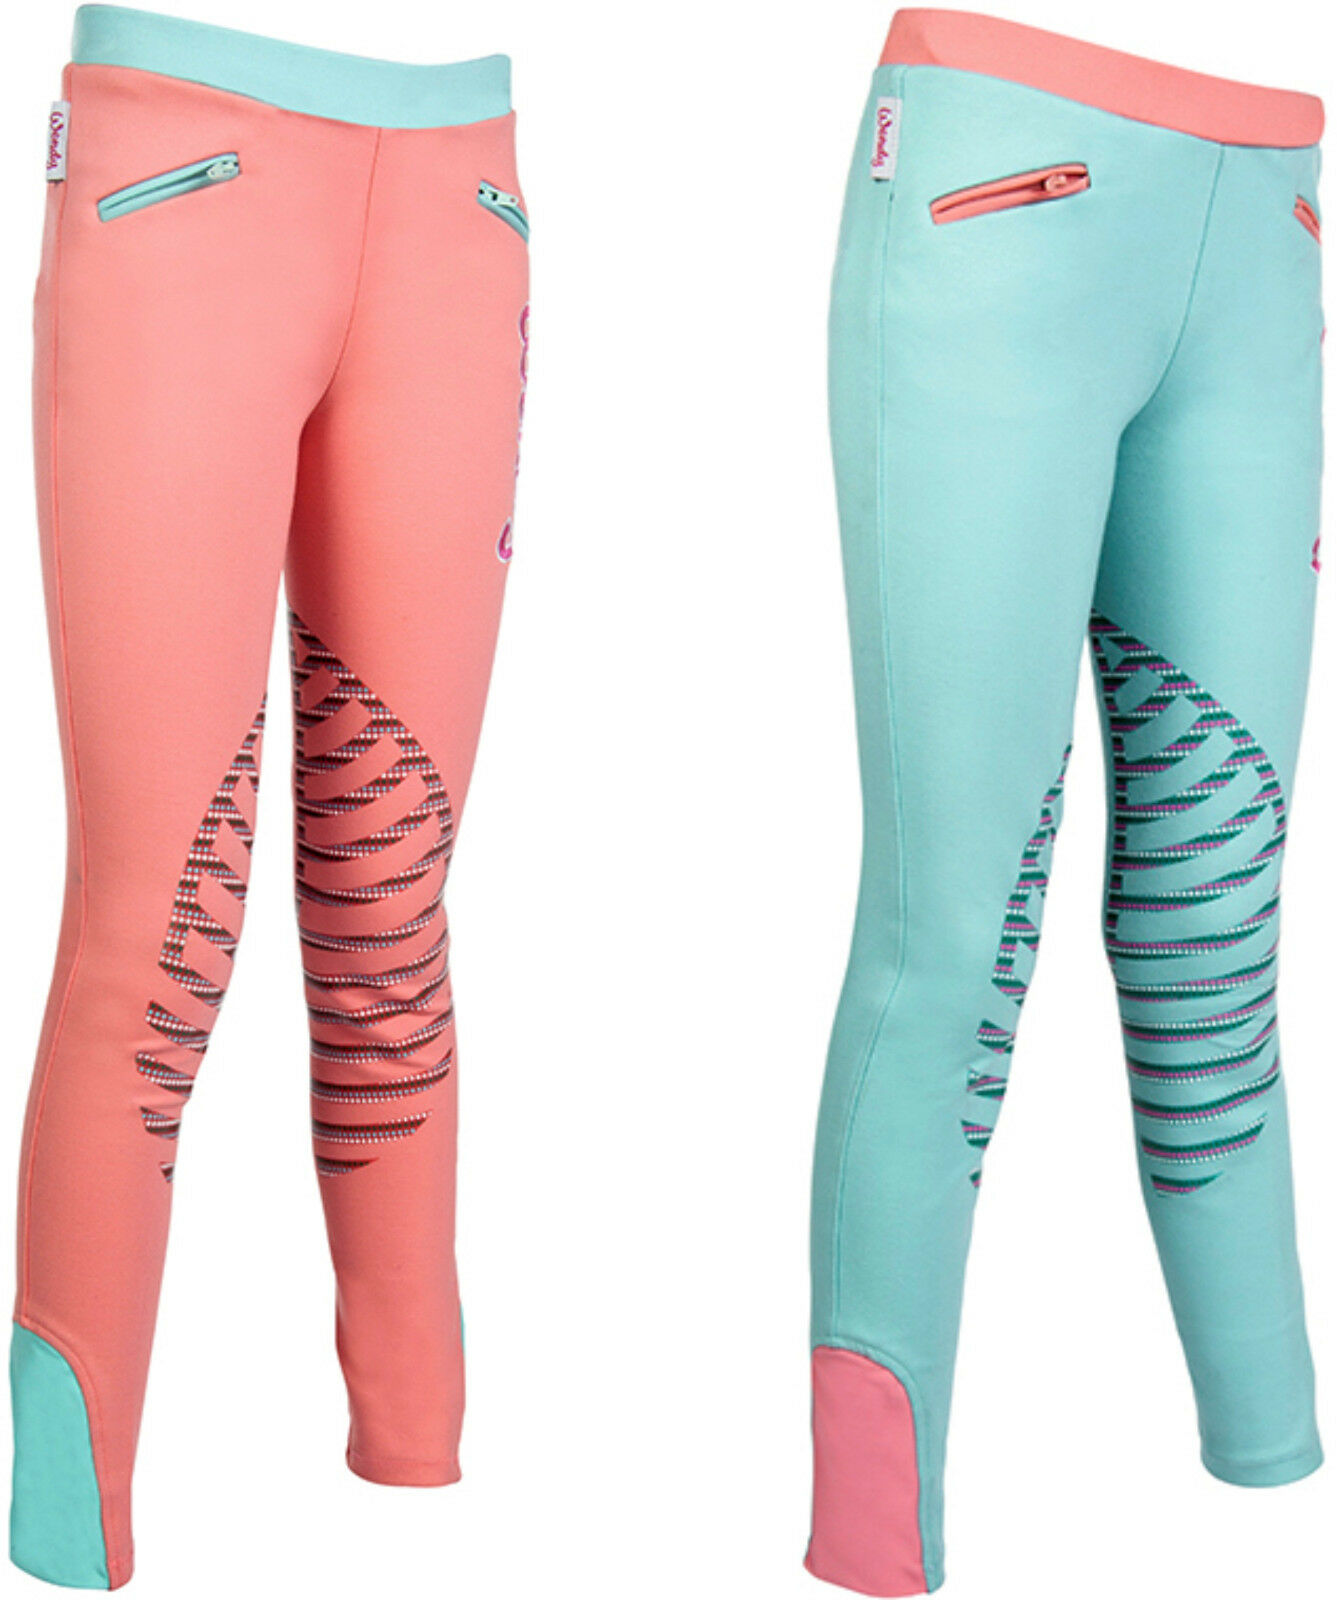 HKM Wendy Reitleggings with Silicone Knee Patch Riding Breeches (9979)